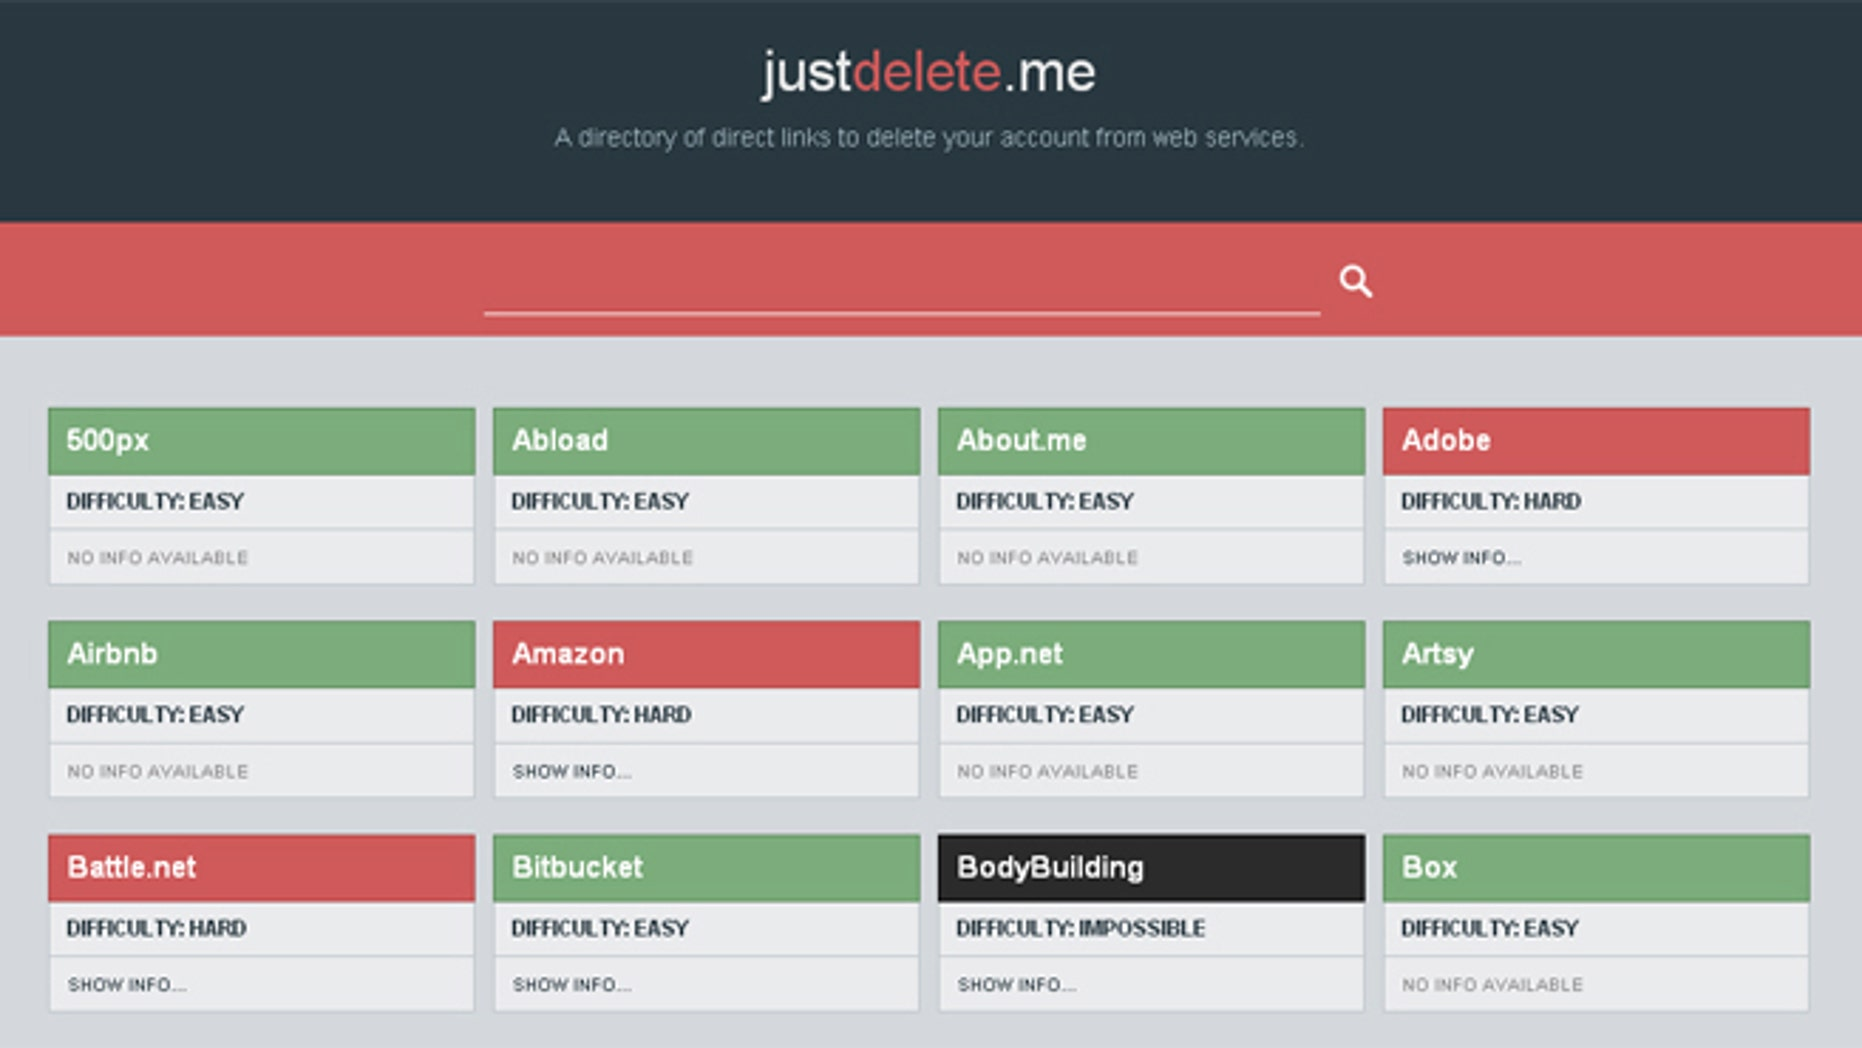 JustDelete.me provides a growing list of Internet-connected services, with links and information about the account deletion process.